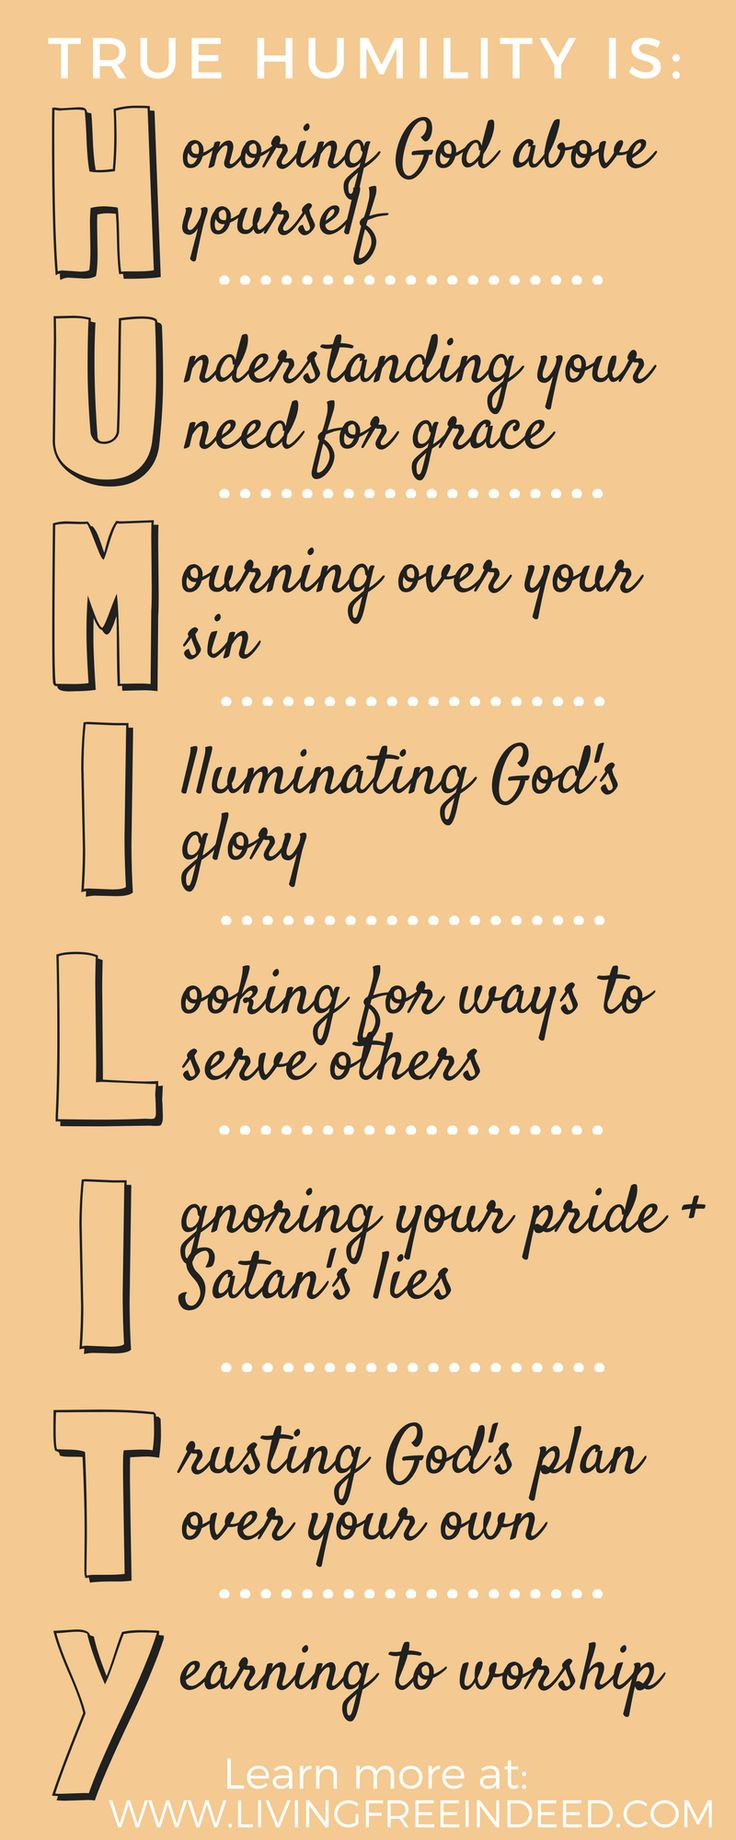 Best 25 mighty to save ideas on pinterest jesus is lord pride how humility deepens your walk with god hexwebz Images